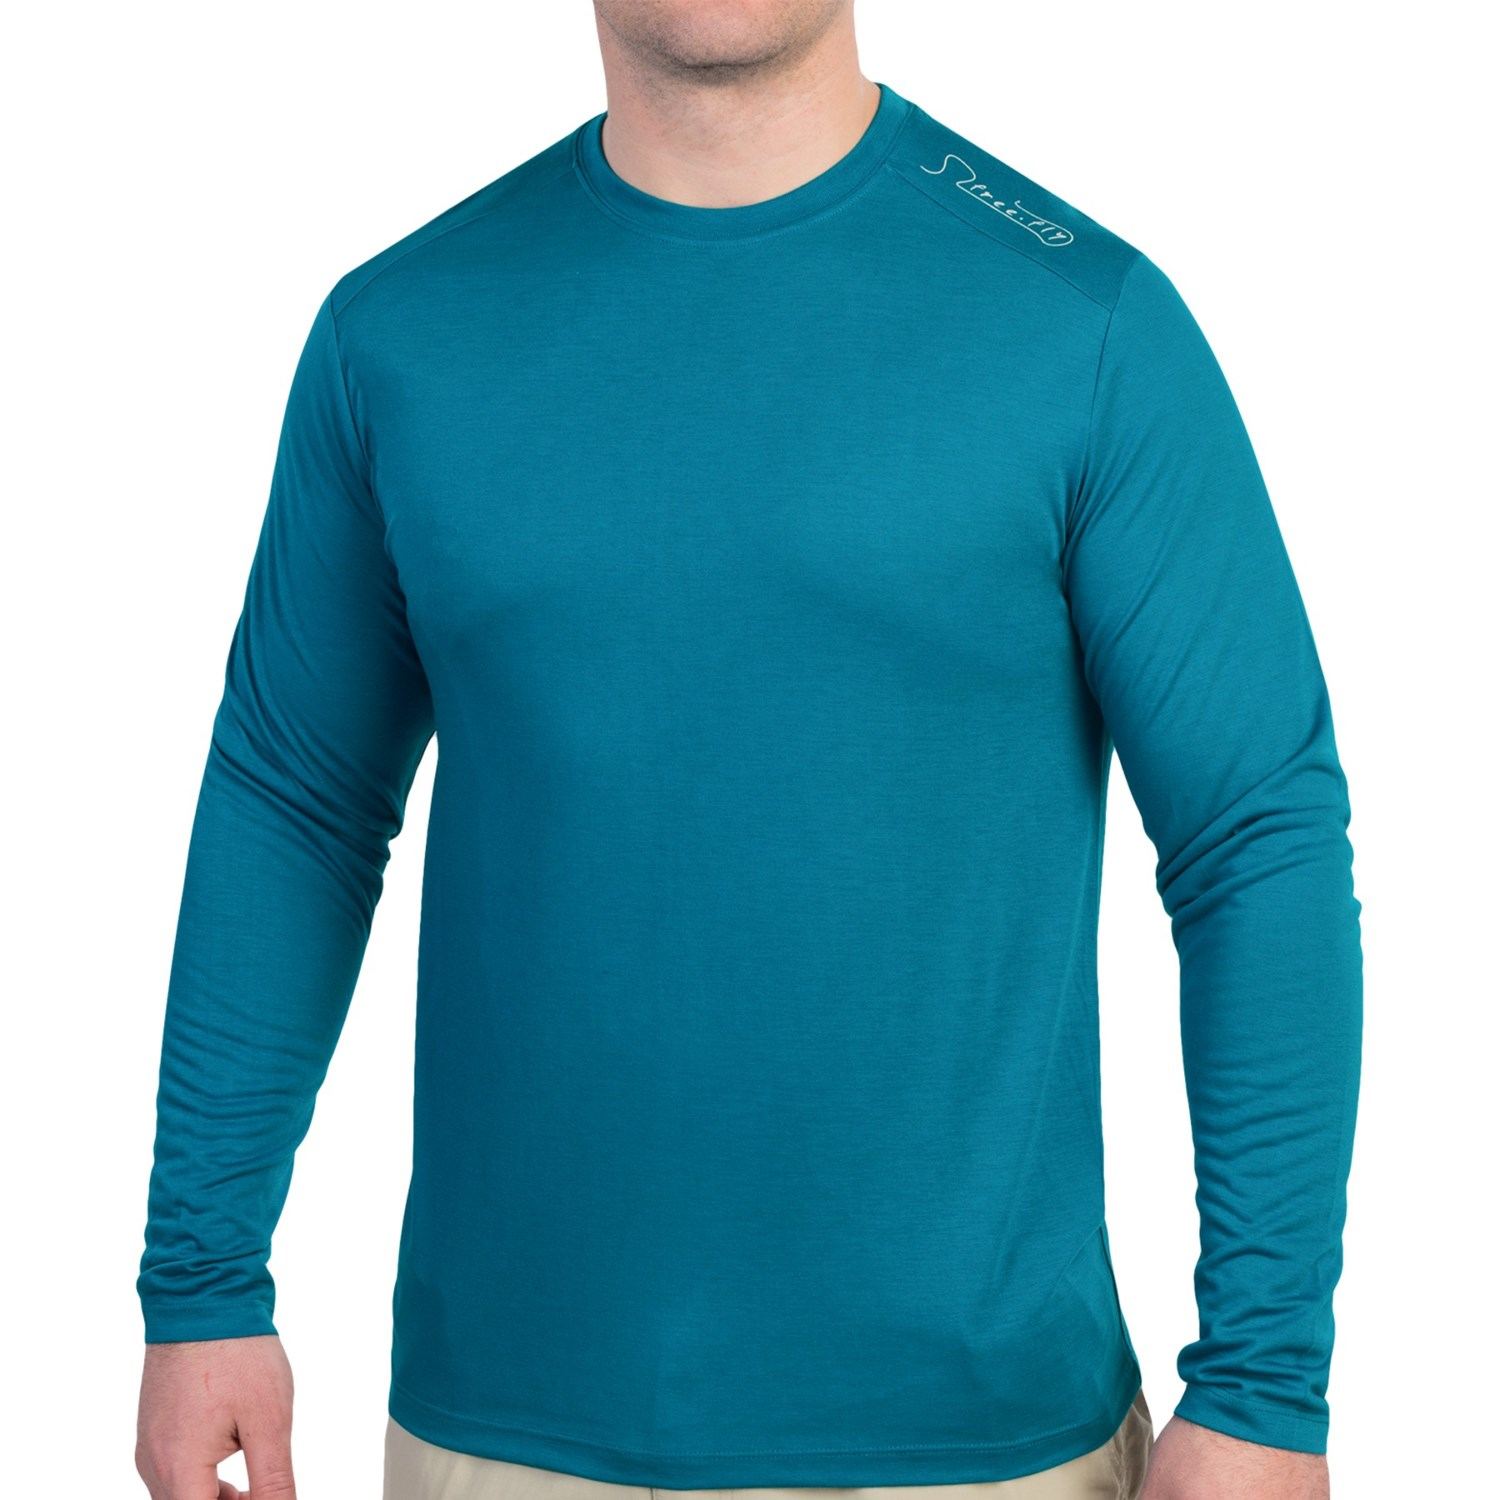 Free fly lightweight t shirt for men save 31 for Lightweight long sleeve fishing shirts